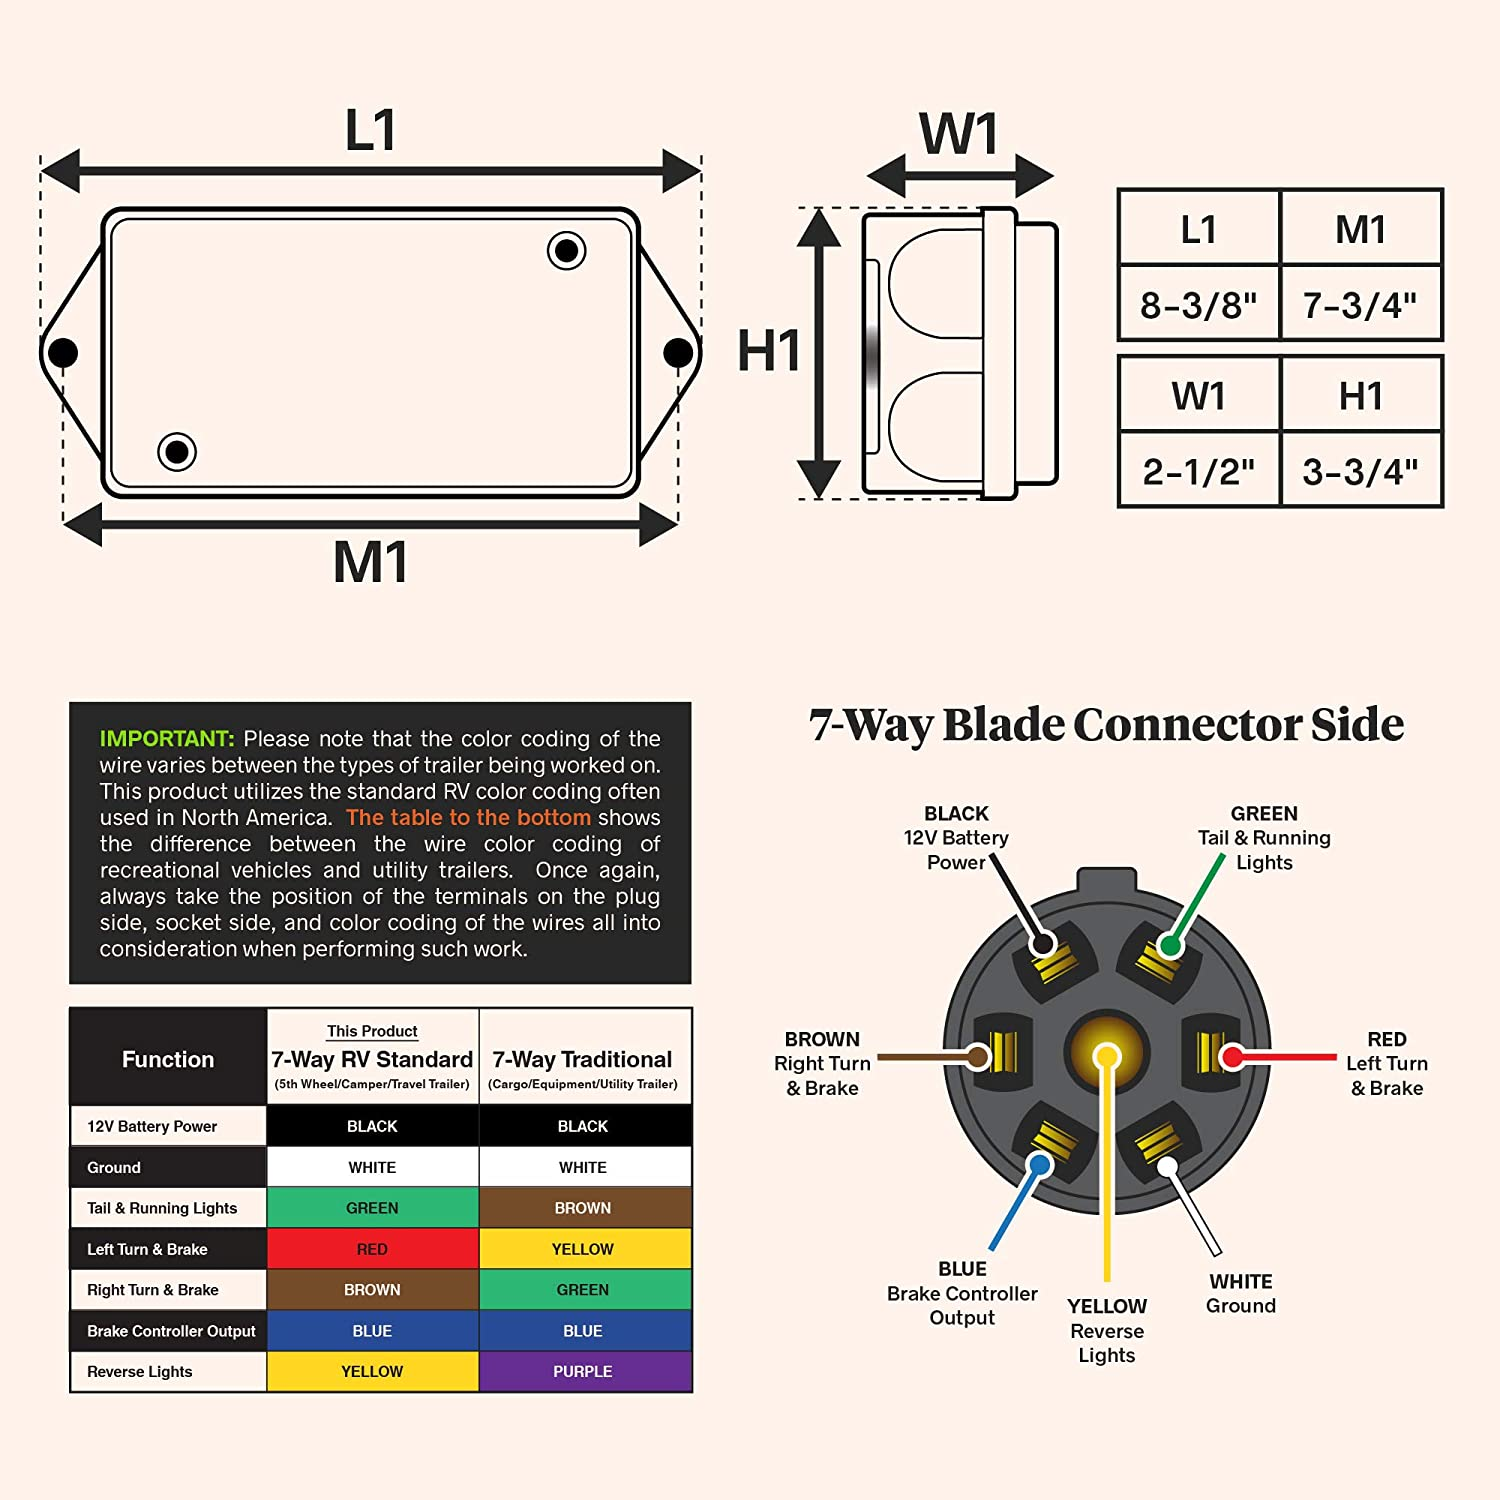 Online Led Store 7 Port Trailer Wiring Junction Box Steel Studs Way Plug Diagram For Trail Tech Stickers Included Weatherproof Wire Cable Connection